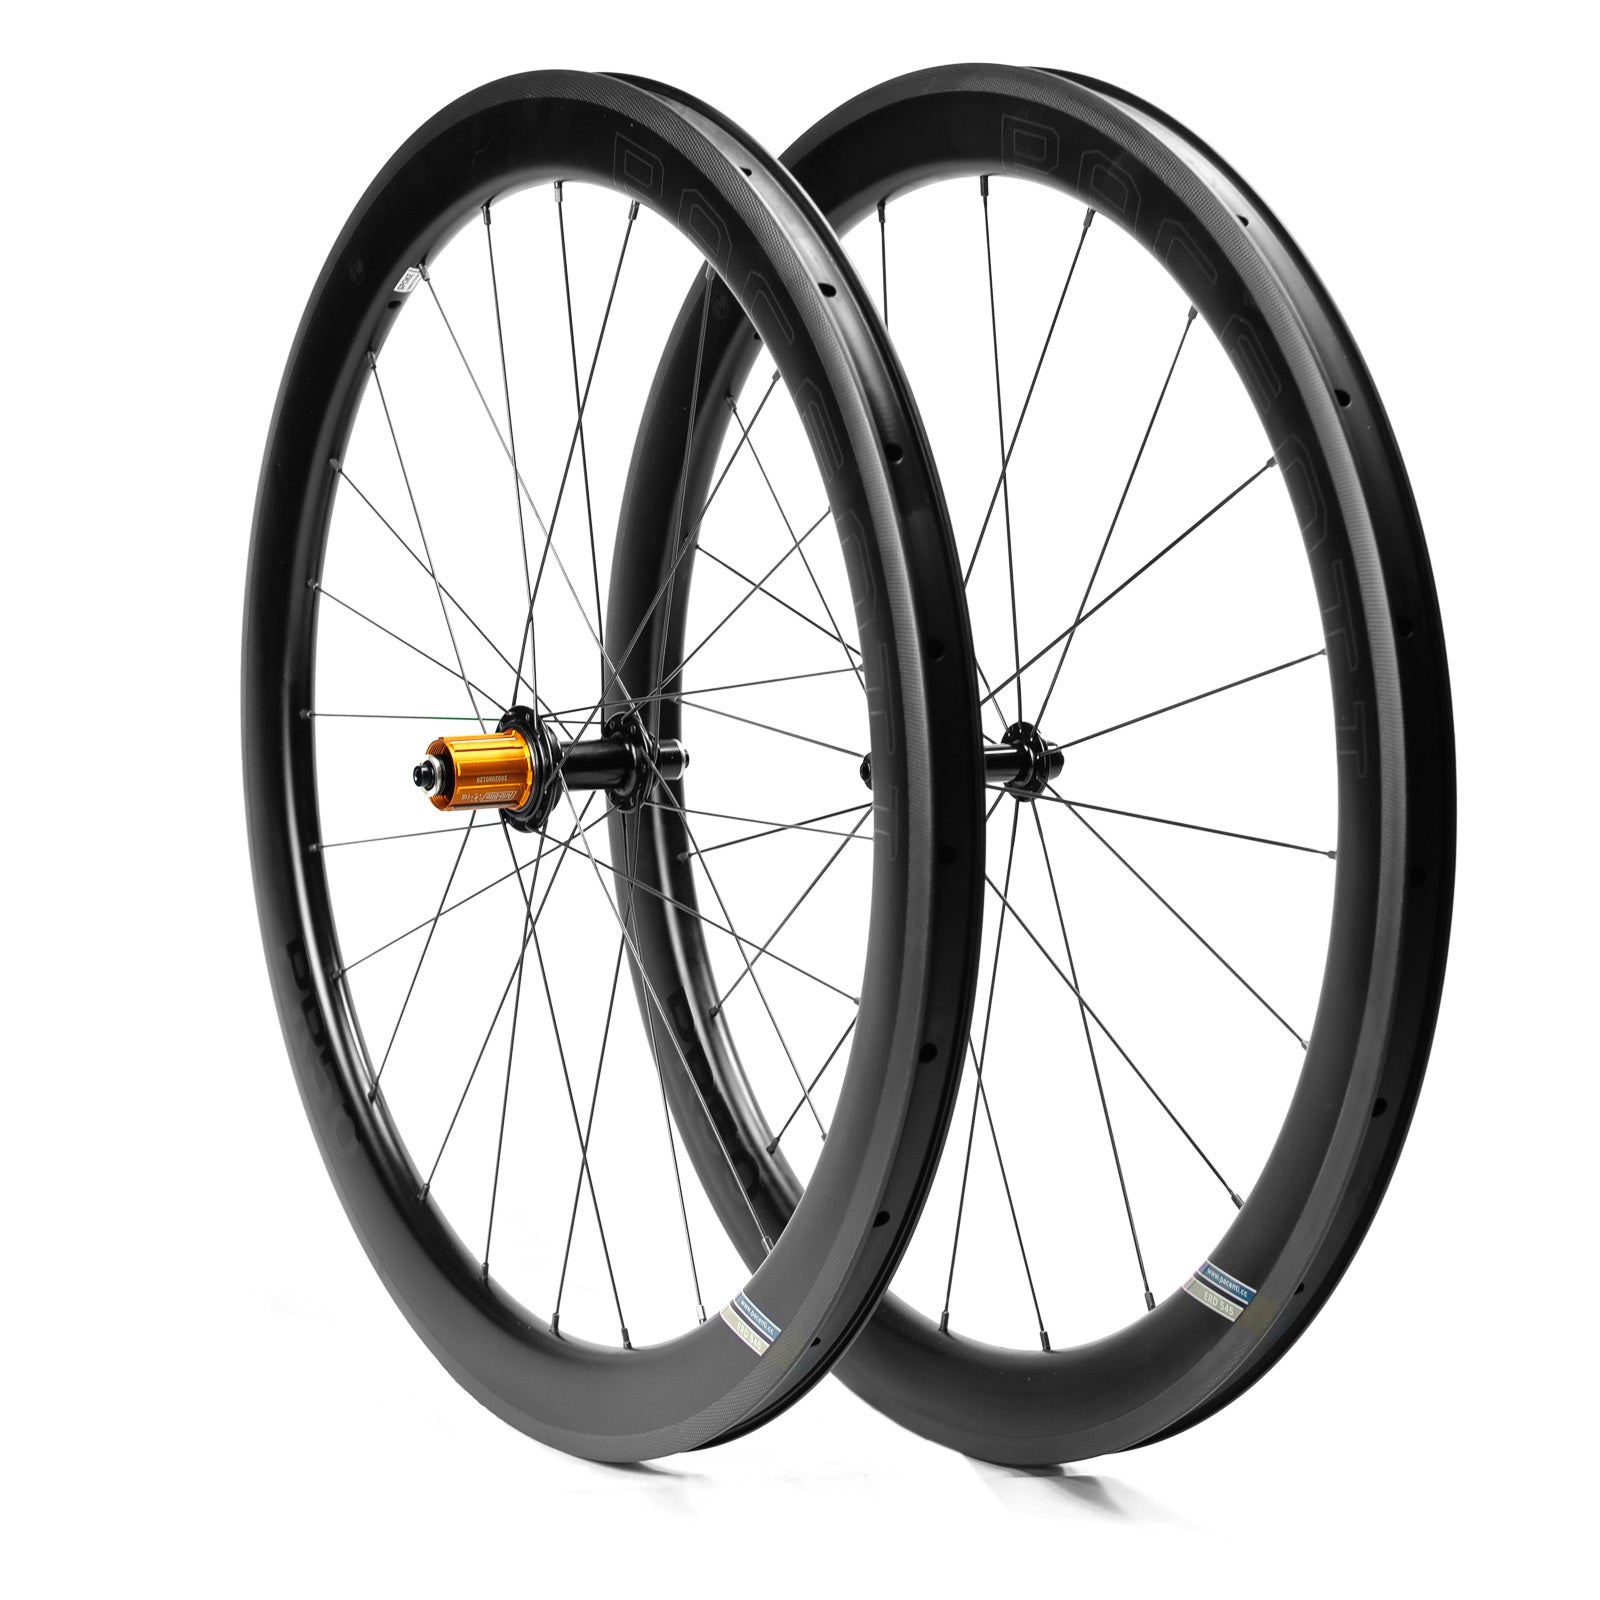 Carbon PR50 rim brake wheel set 700c